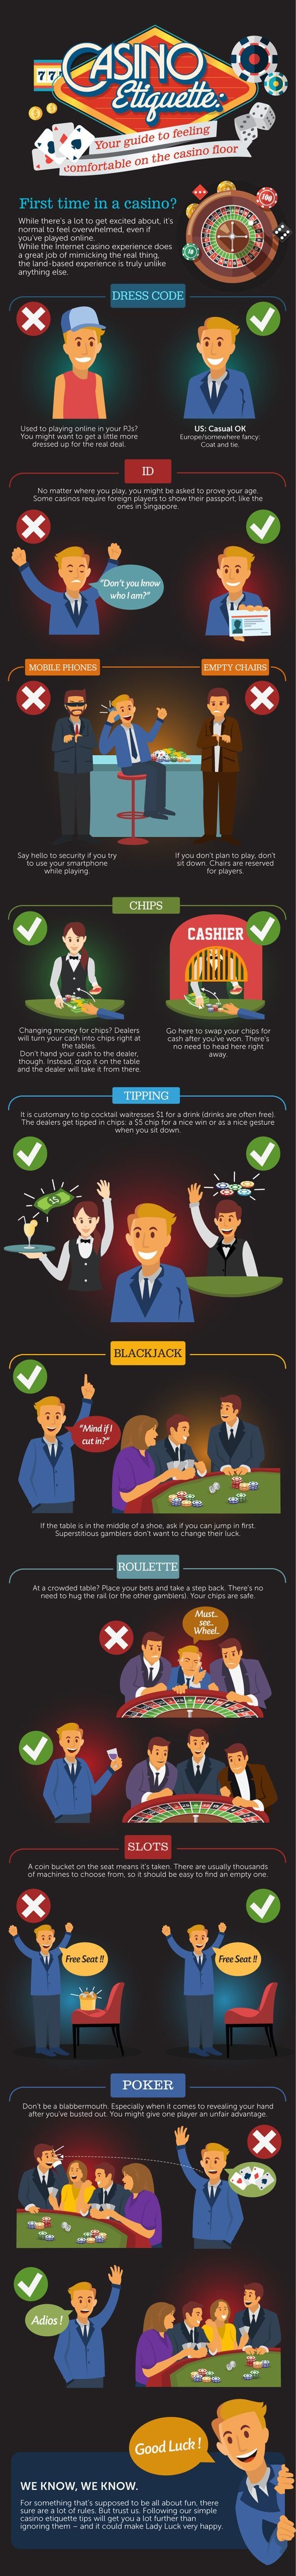 Casino Etiquette – The Best Guide that Makes You Feel Comfortable On the Casino Floor |